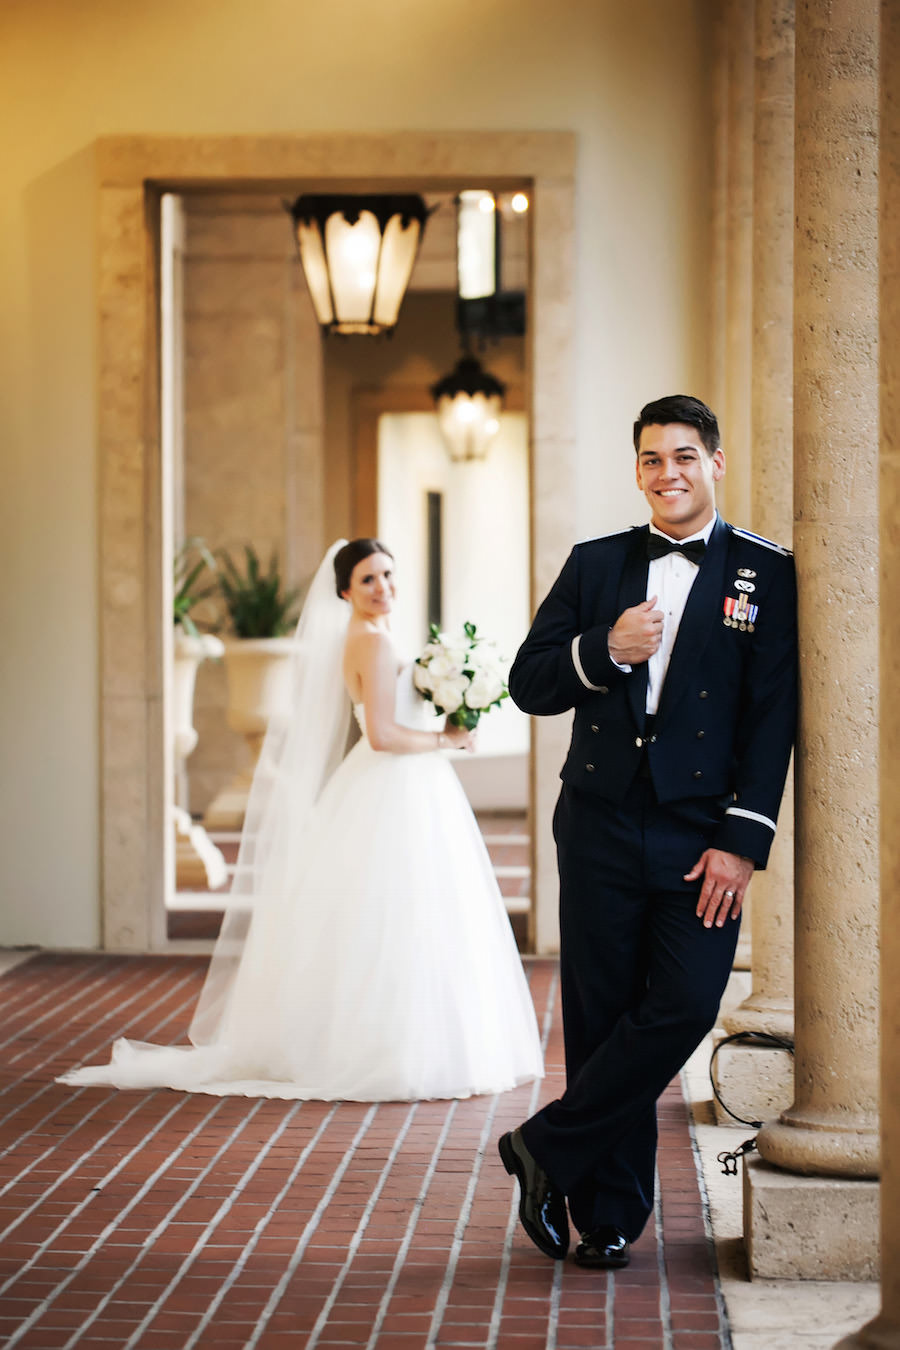 Bride and Groom Wedding Portrait in Military Dress | St. Petersburg Wedding Photographer Limelight Photography